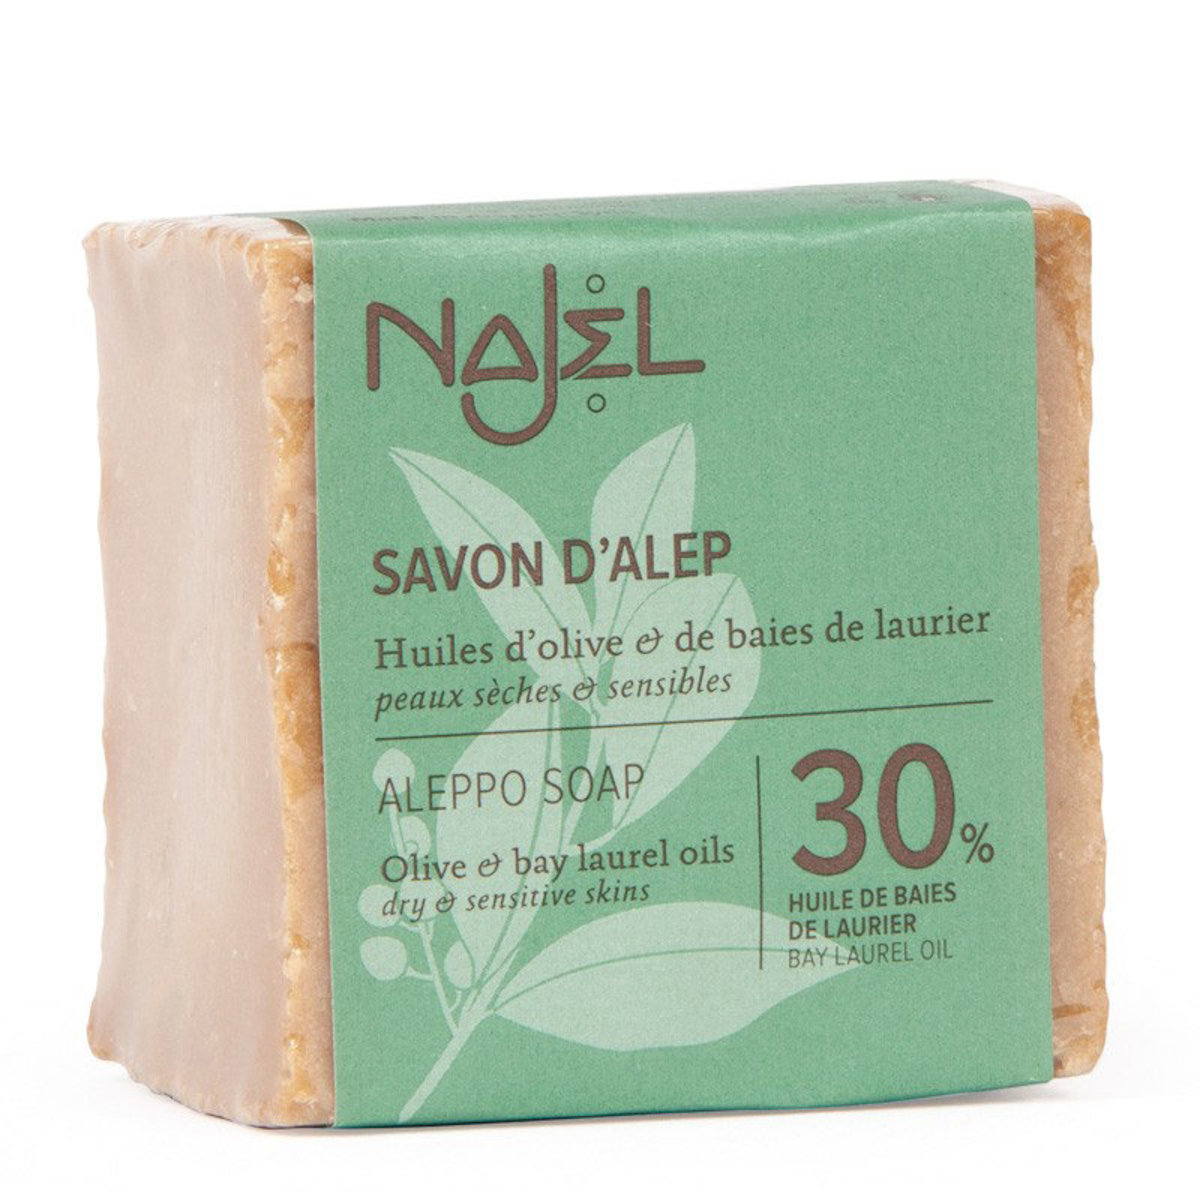 Najel Aleppo Soap 30% Bay Laurel Oil (Free a mesh bag)